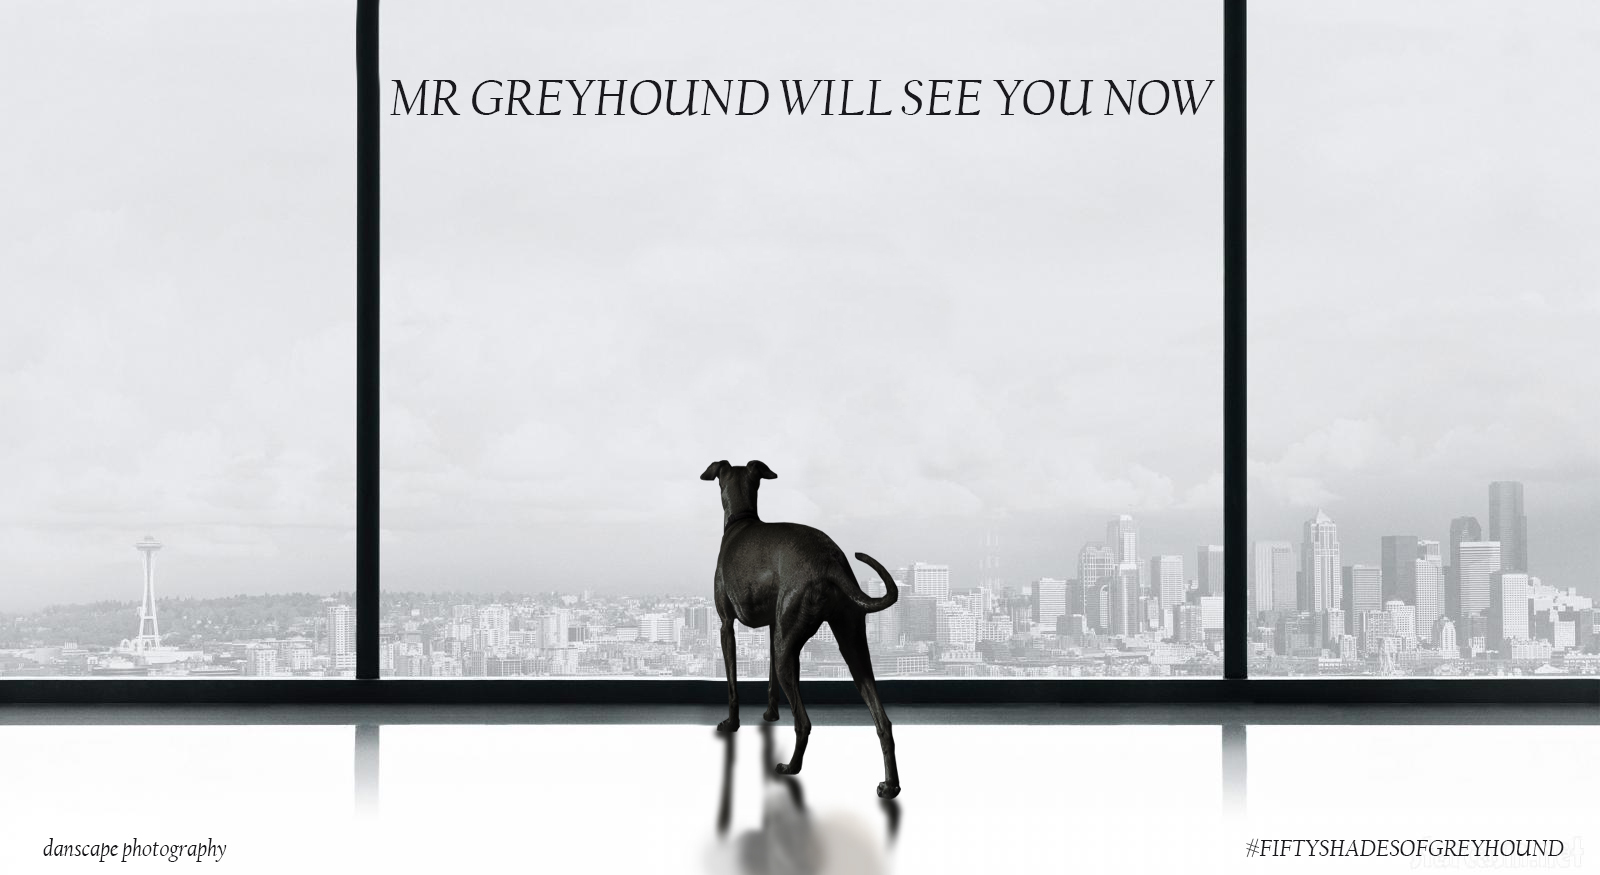 Mr Greyhound will see you now.